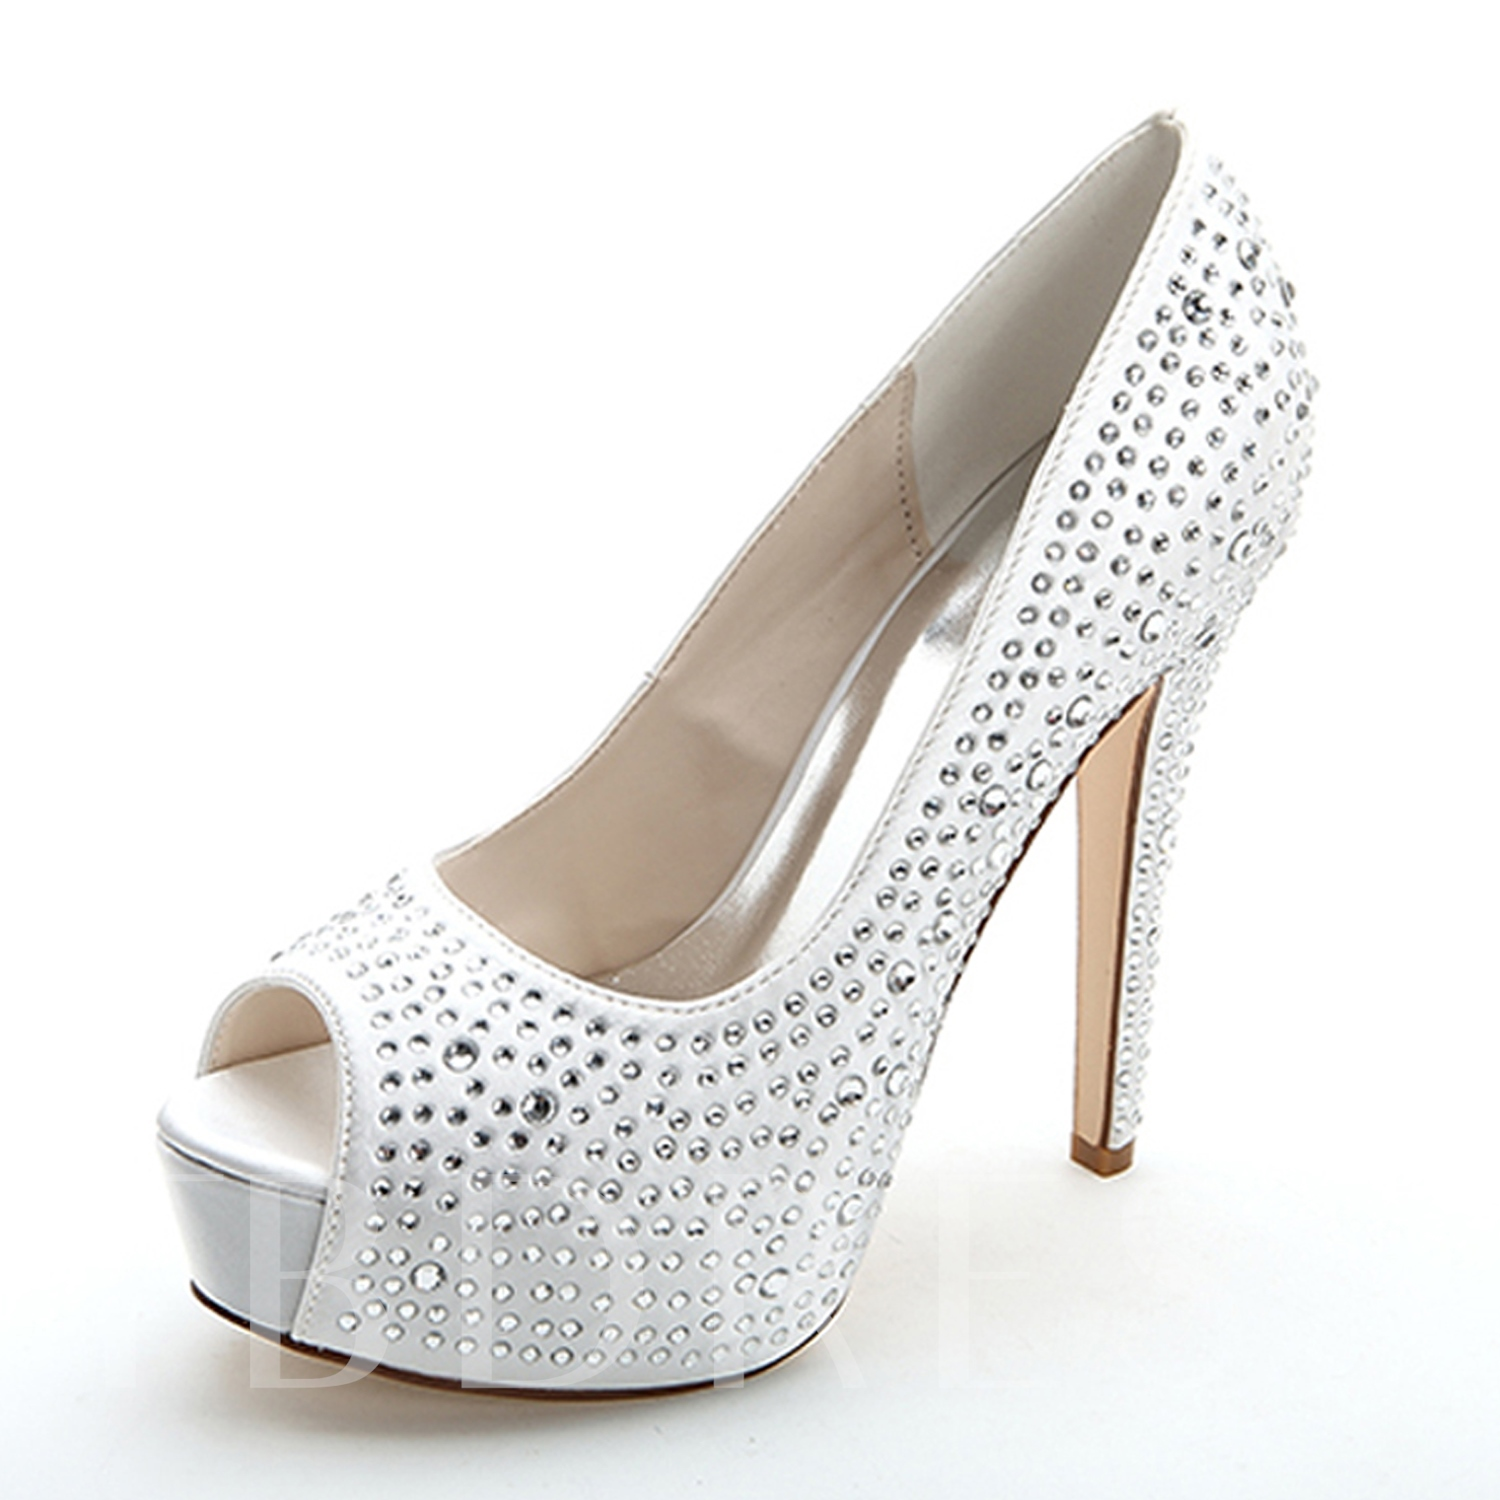 Buy Buckle Stiletto Heel Platform Rhinestone Women's Wedding Shoes, Spring,Summer,Fall, 12225843 for $62.99 in TBDress store